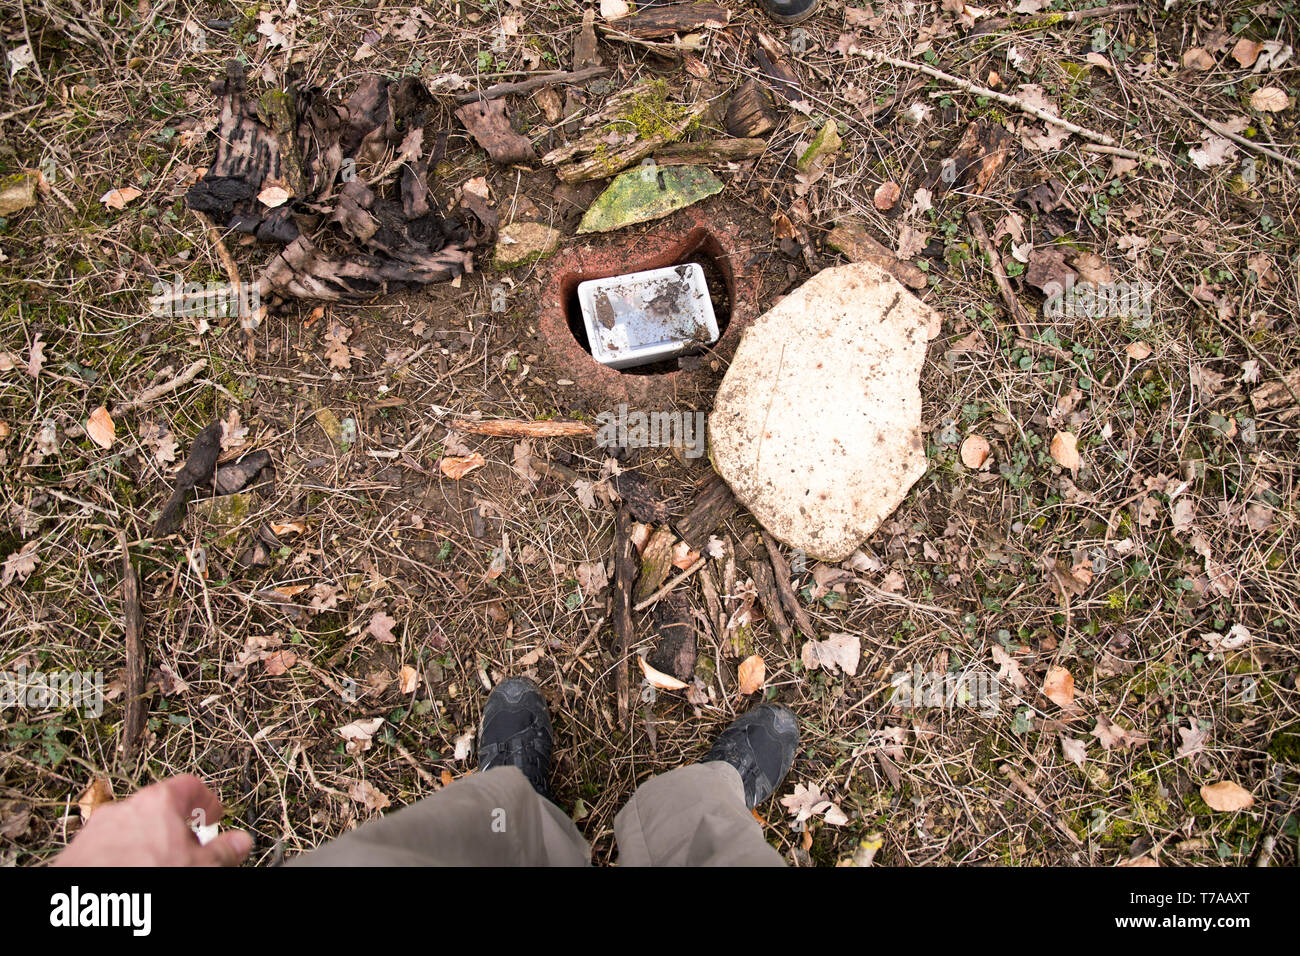 geocache hidden in the ground in a tube - Stock Image